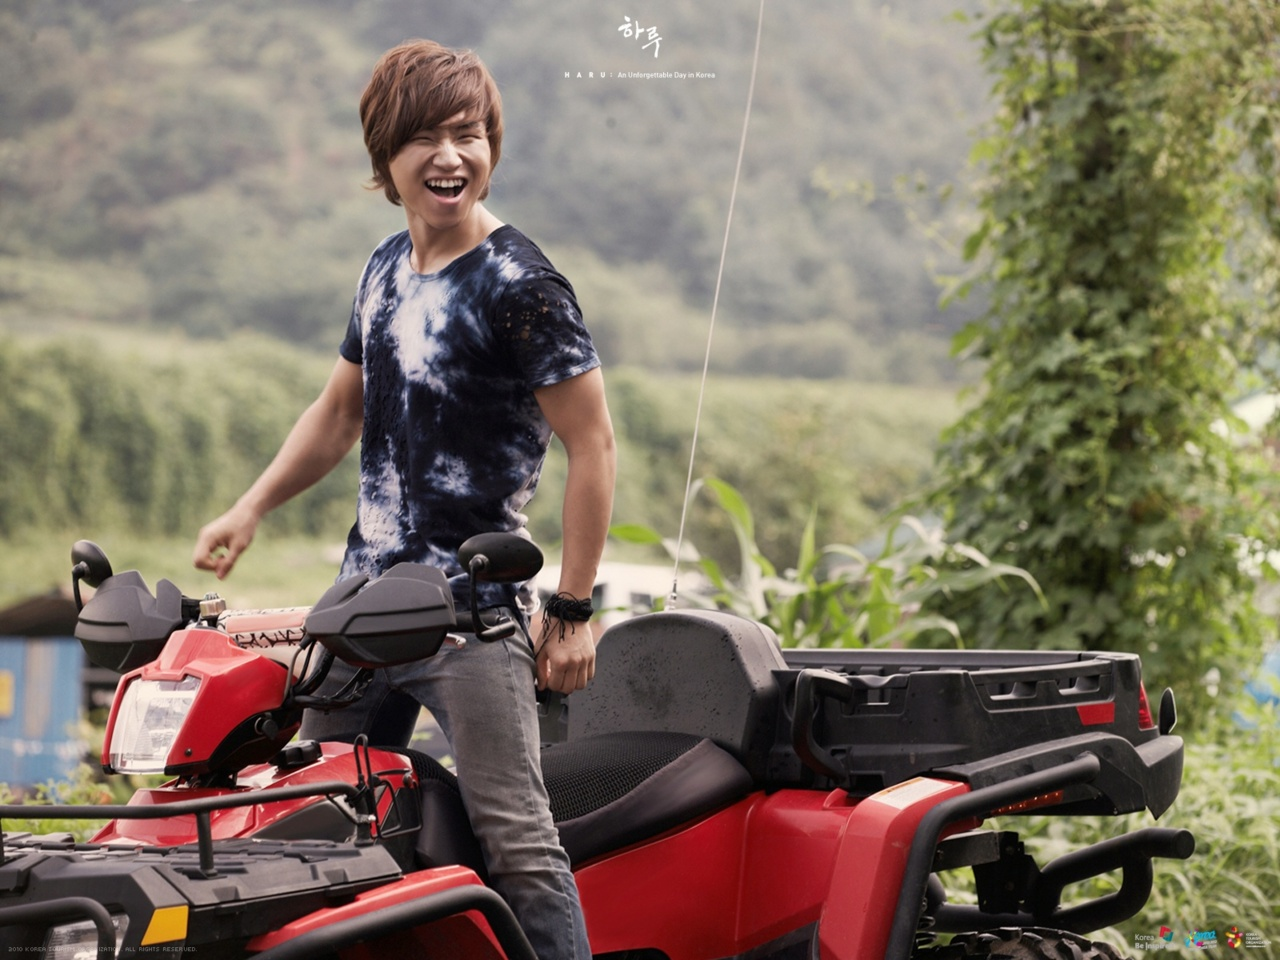 Latest-Kpop-Daesung-HARU-Day-Memories-HD-Quality-Also-downloa-all-of-BIGBANG-wallpaper-wp5807404